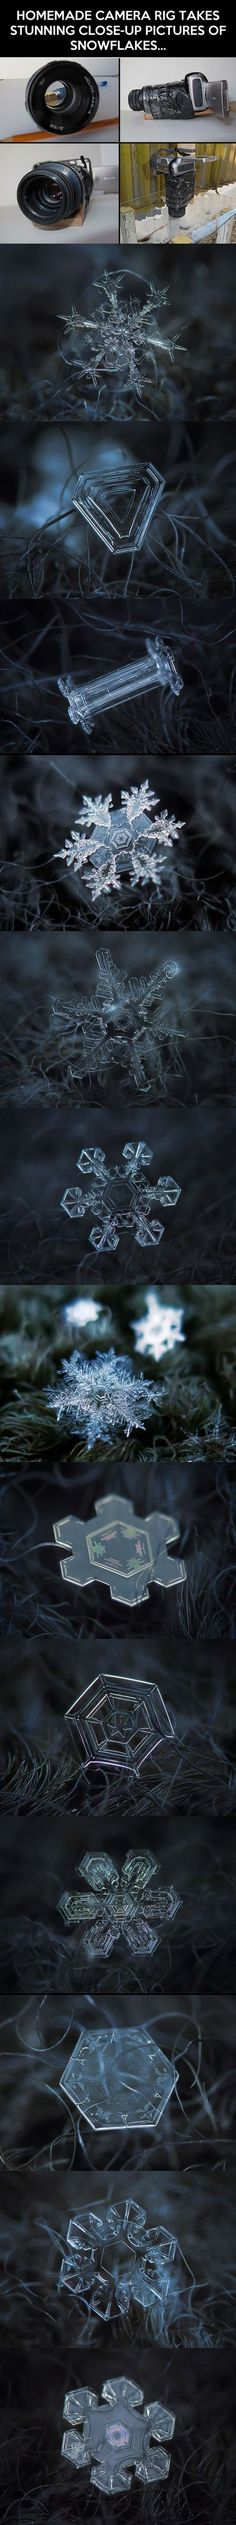 Stunning photos of snowflakes.  I didn't know snow flakes could be shaped like the second and third ones!